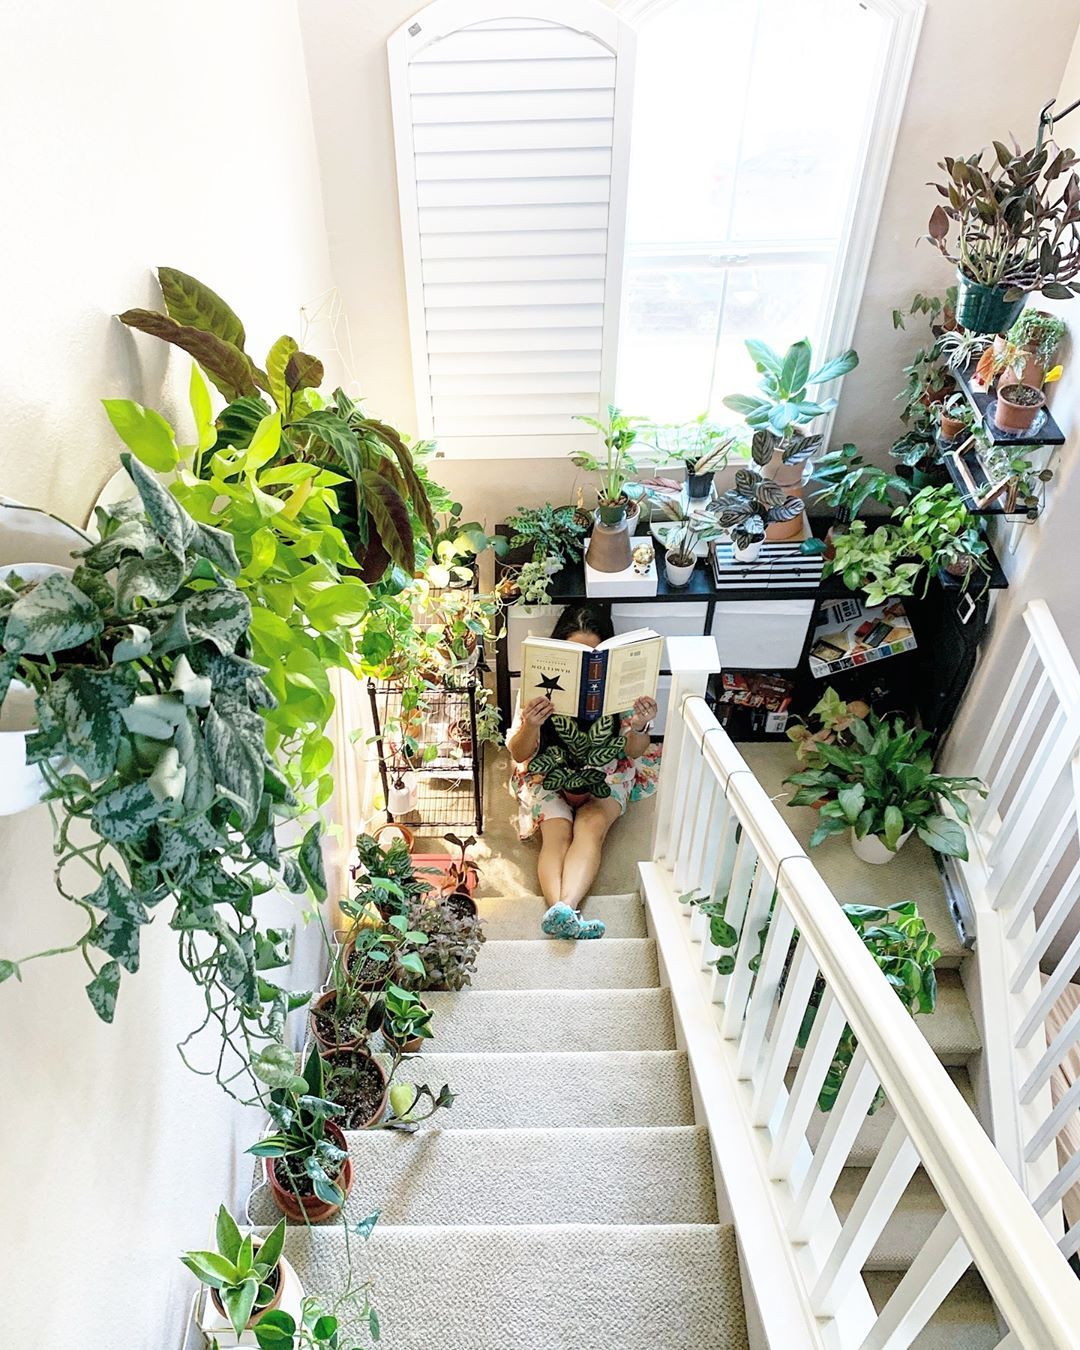 21 Houseplant Decor Ideas That Will Make Your Home 200 Prettier Plants House Plants Plant Stand Indoor